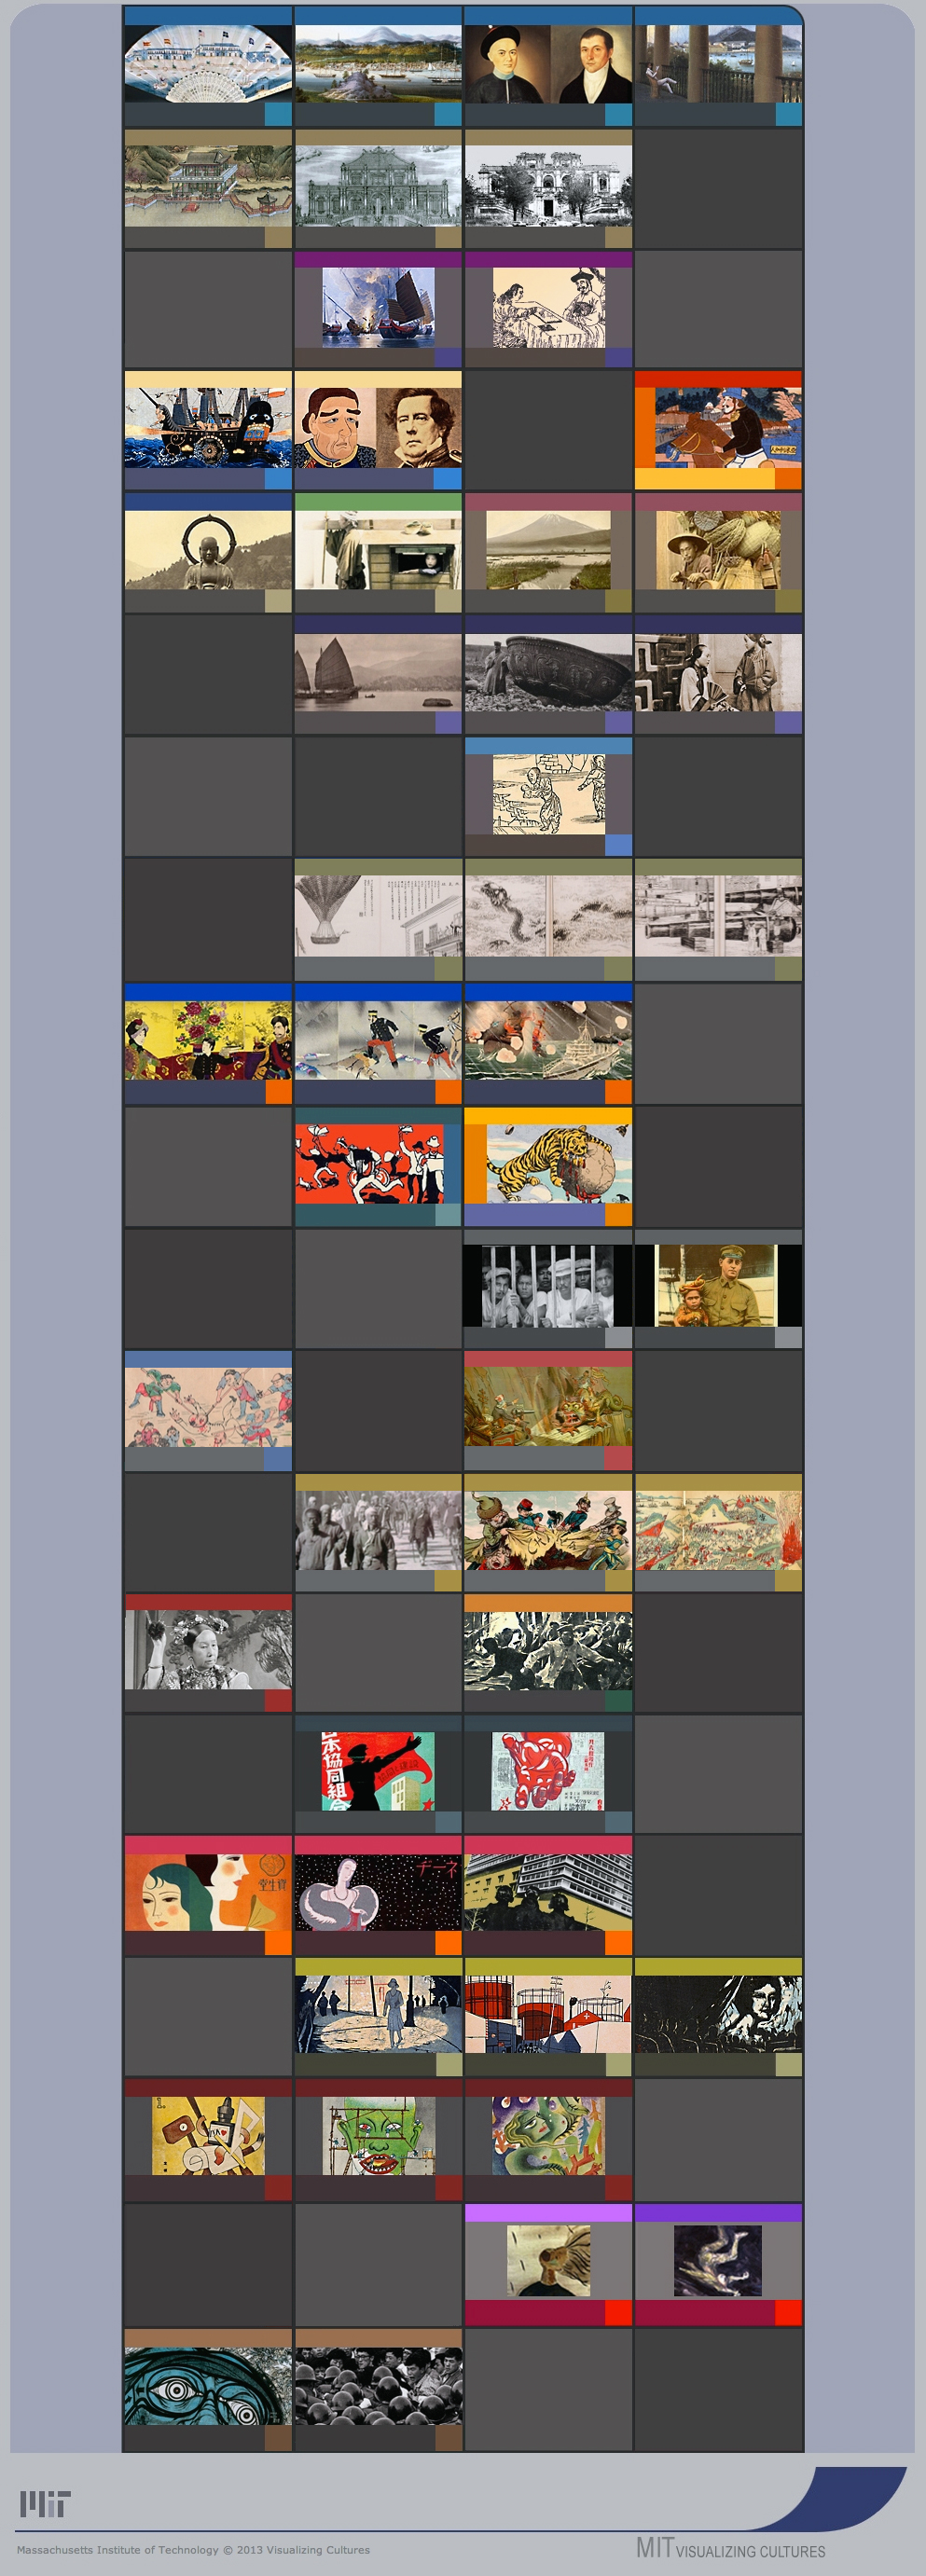 MIT Visualizing Cultures, units menu for the project on MIT OpenCourseWare. These units focus primarily on the emergence of Japan and China in the modern world.